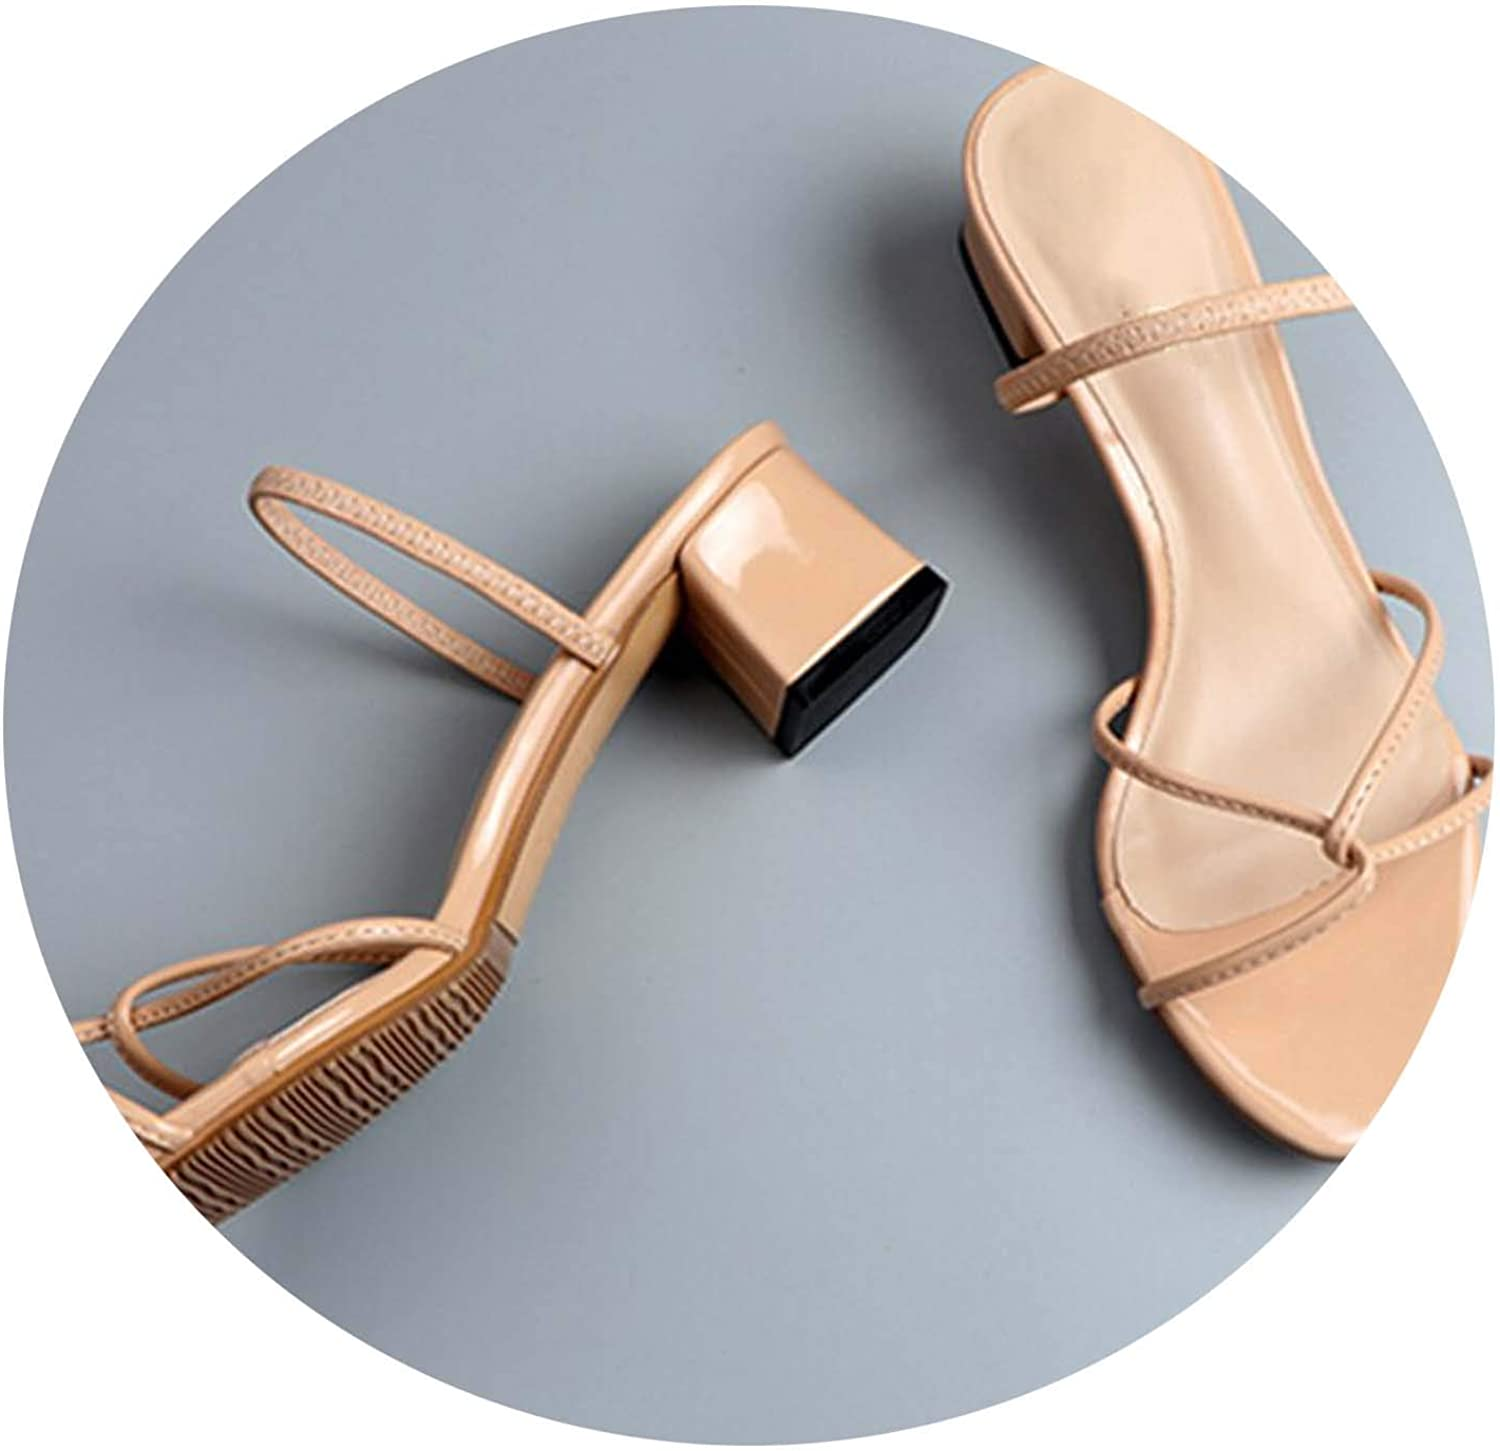 2019 New Sandals Female Summer Wear Medium with Two Sandals Open Toe High Heels 5cm Fine with Nude color